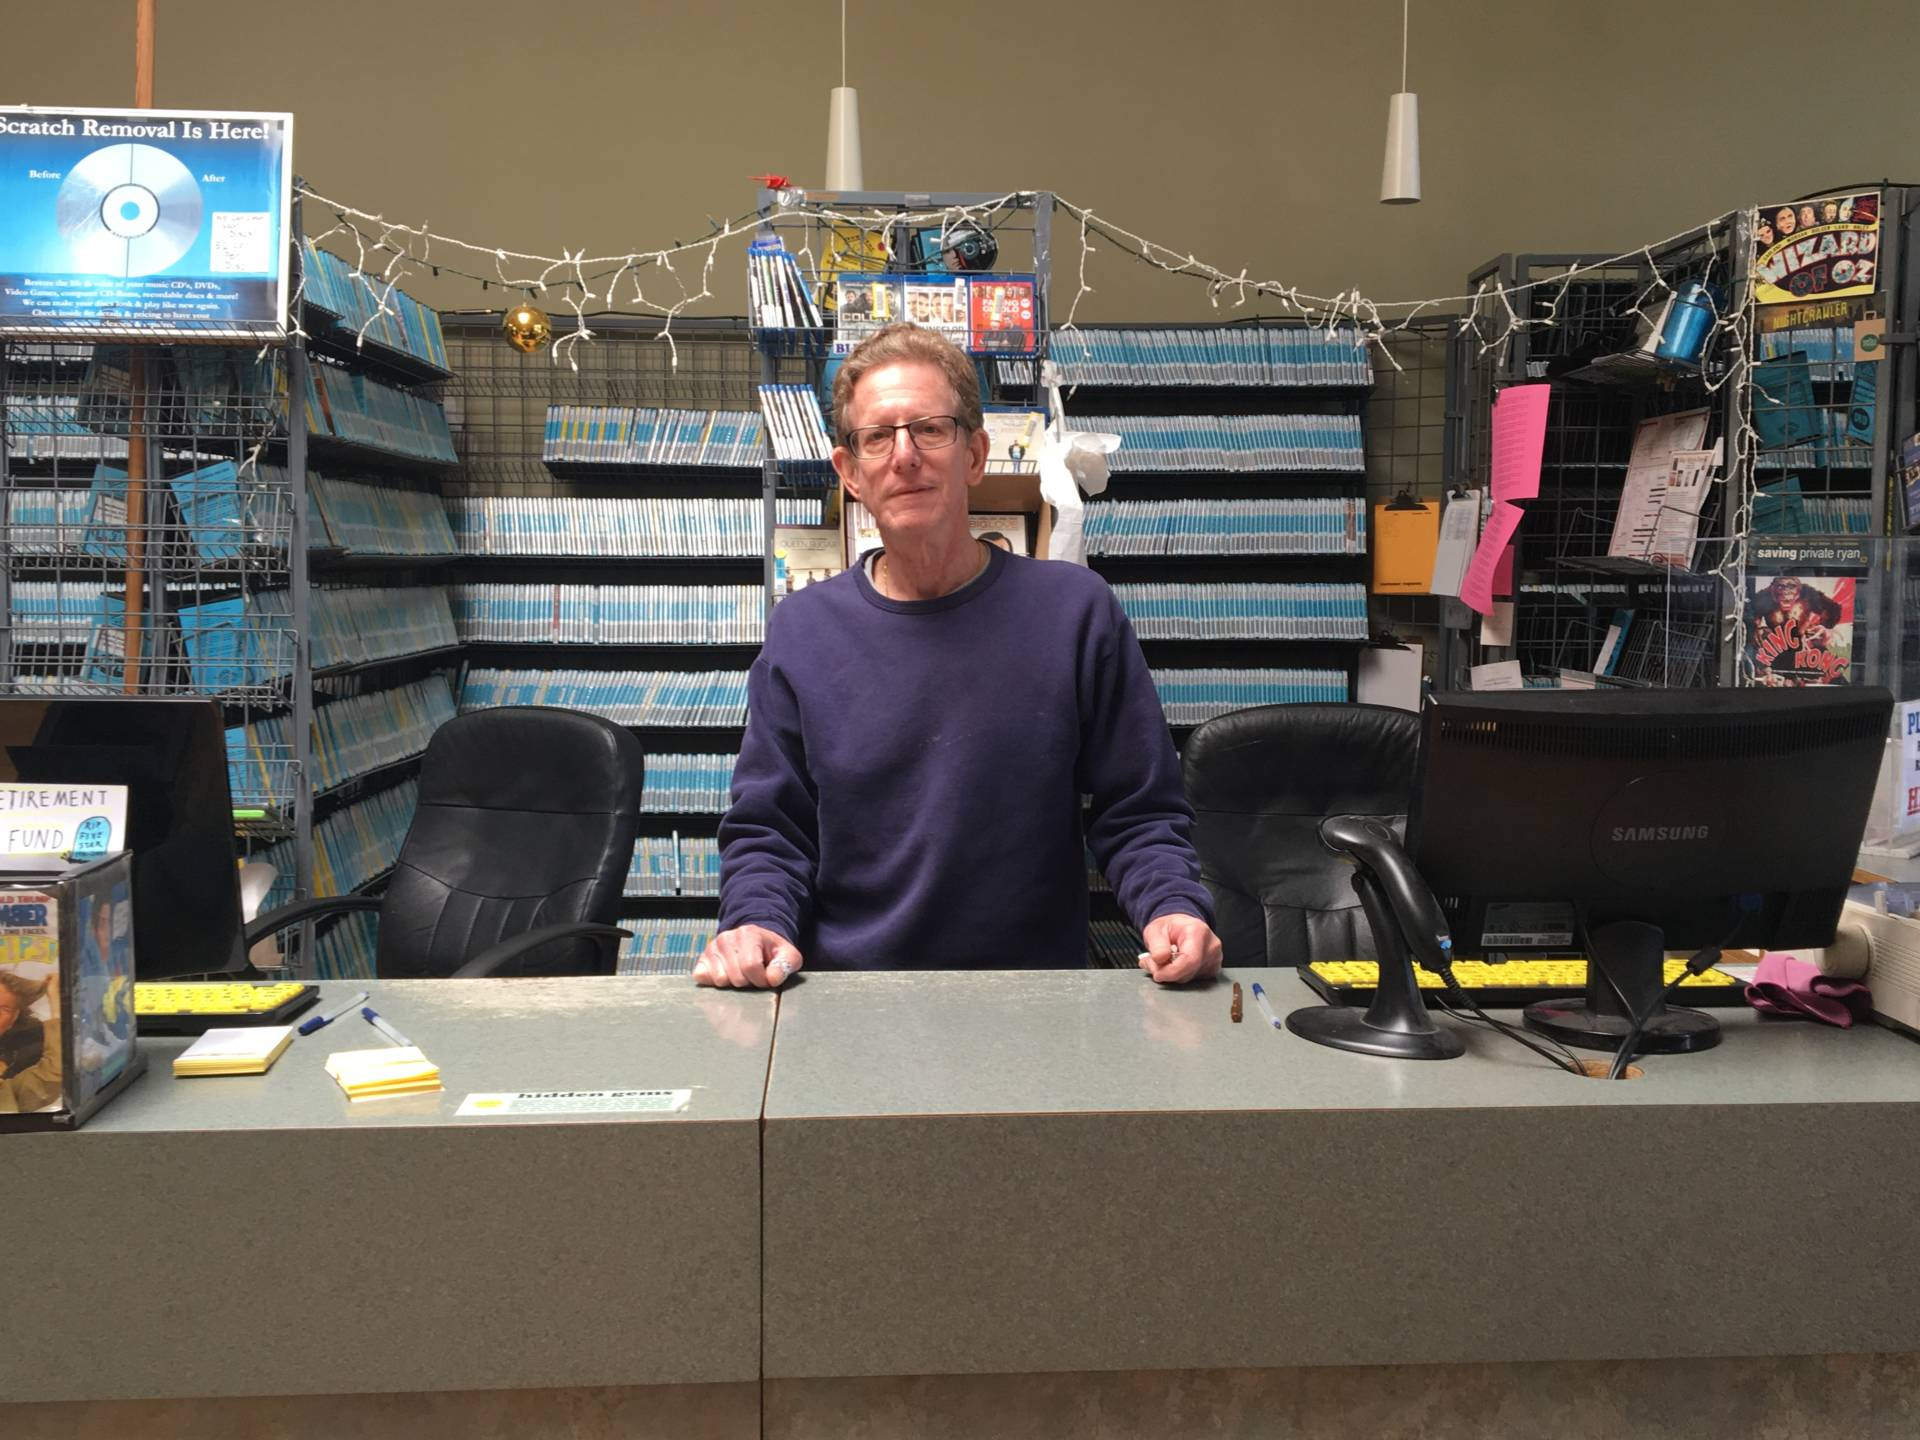 After 38 years in business, Andy Katz is closing his video rental store, the last one in Berkeley. Sam Harnett/KQED